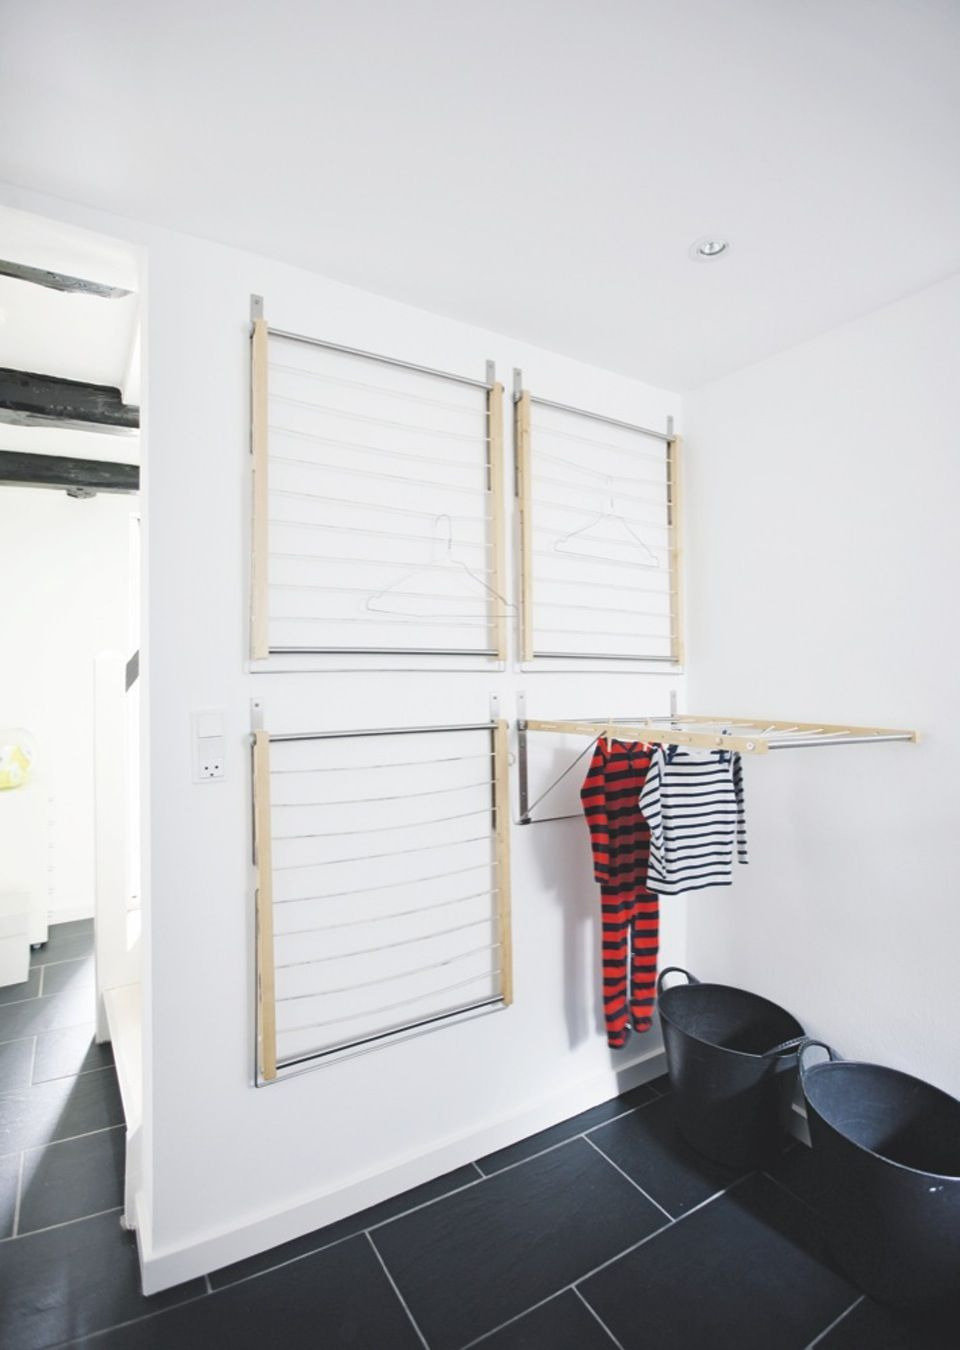 These Are From Ikea What A Great Way To Dry Laundry Inside Even Over Heating Vent In Your